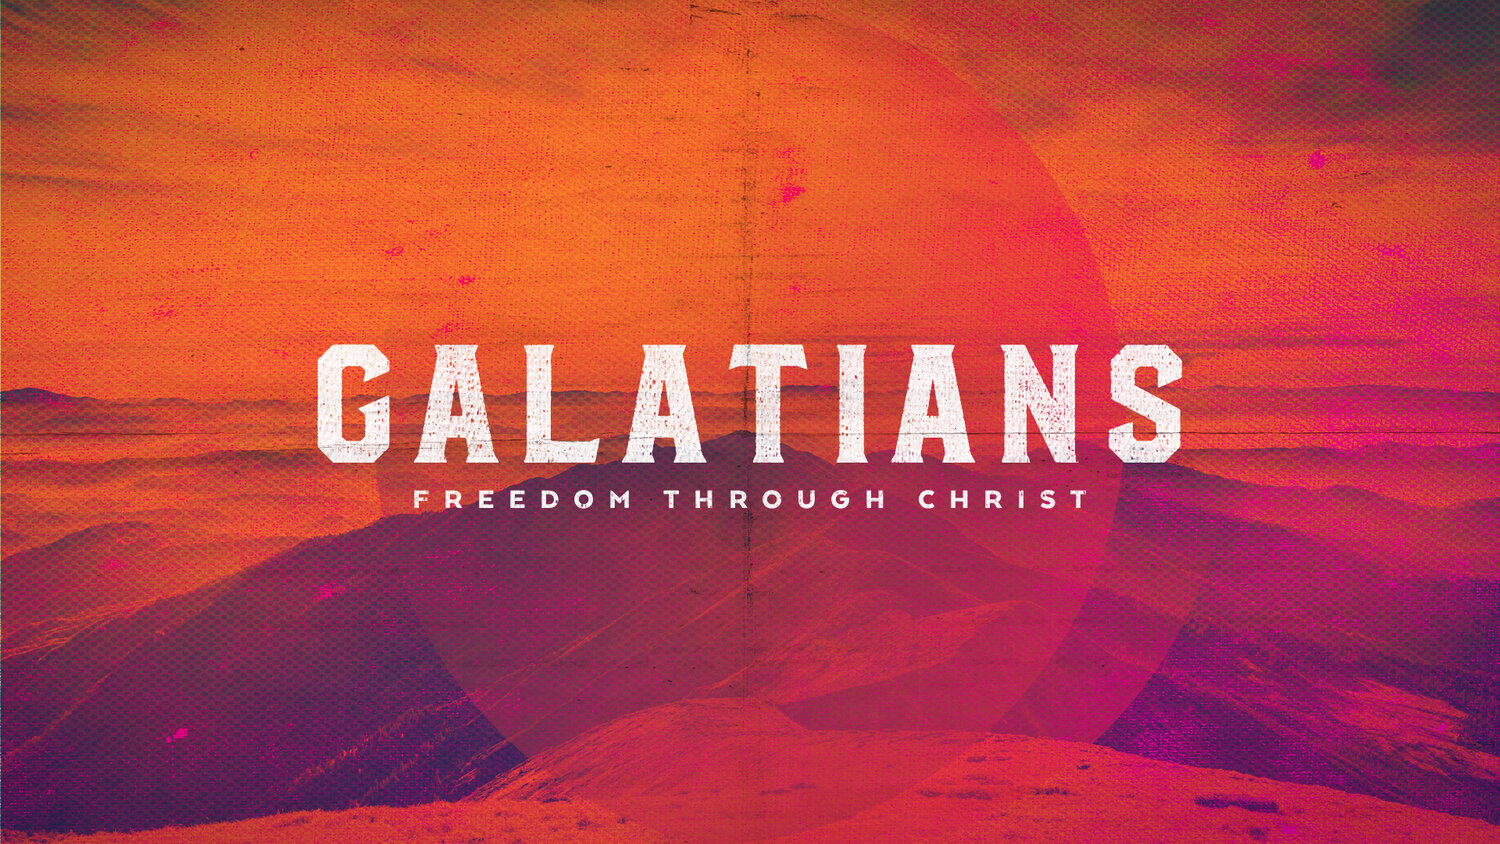 Knowing & Living the Will of God - Galatians 5:1-14